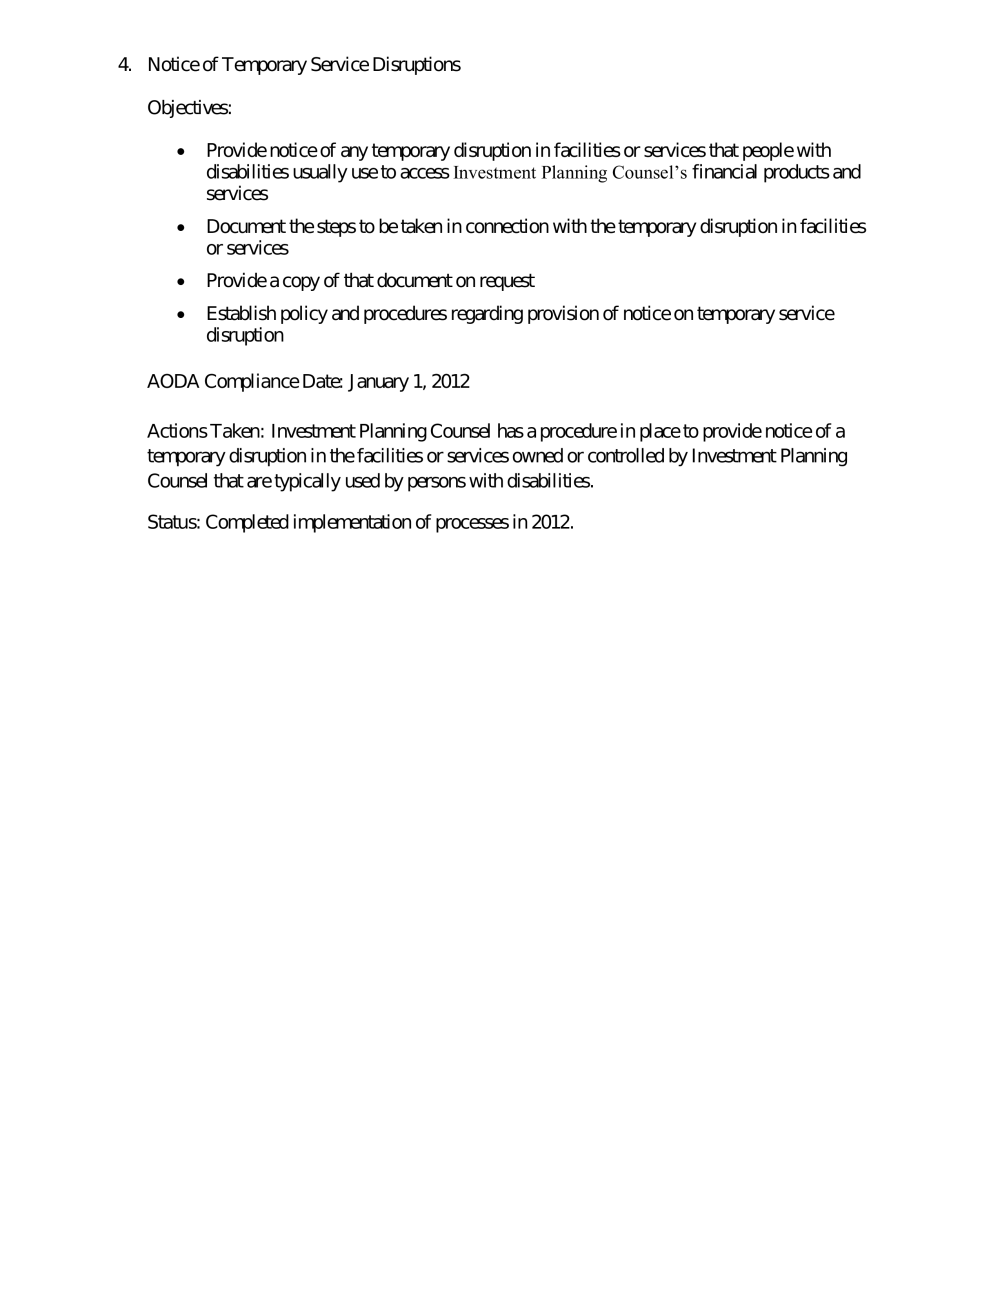 IPC - Accessibility Plan - Final  pdf - At Investment